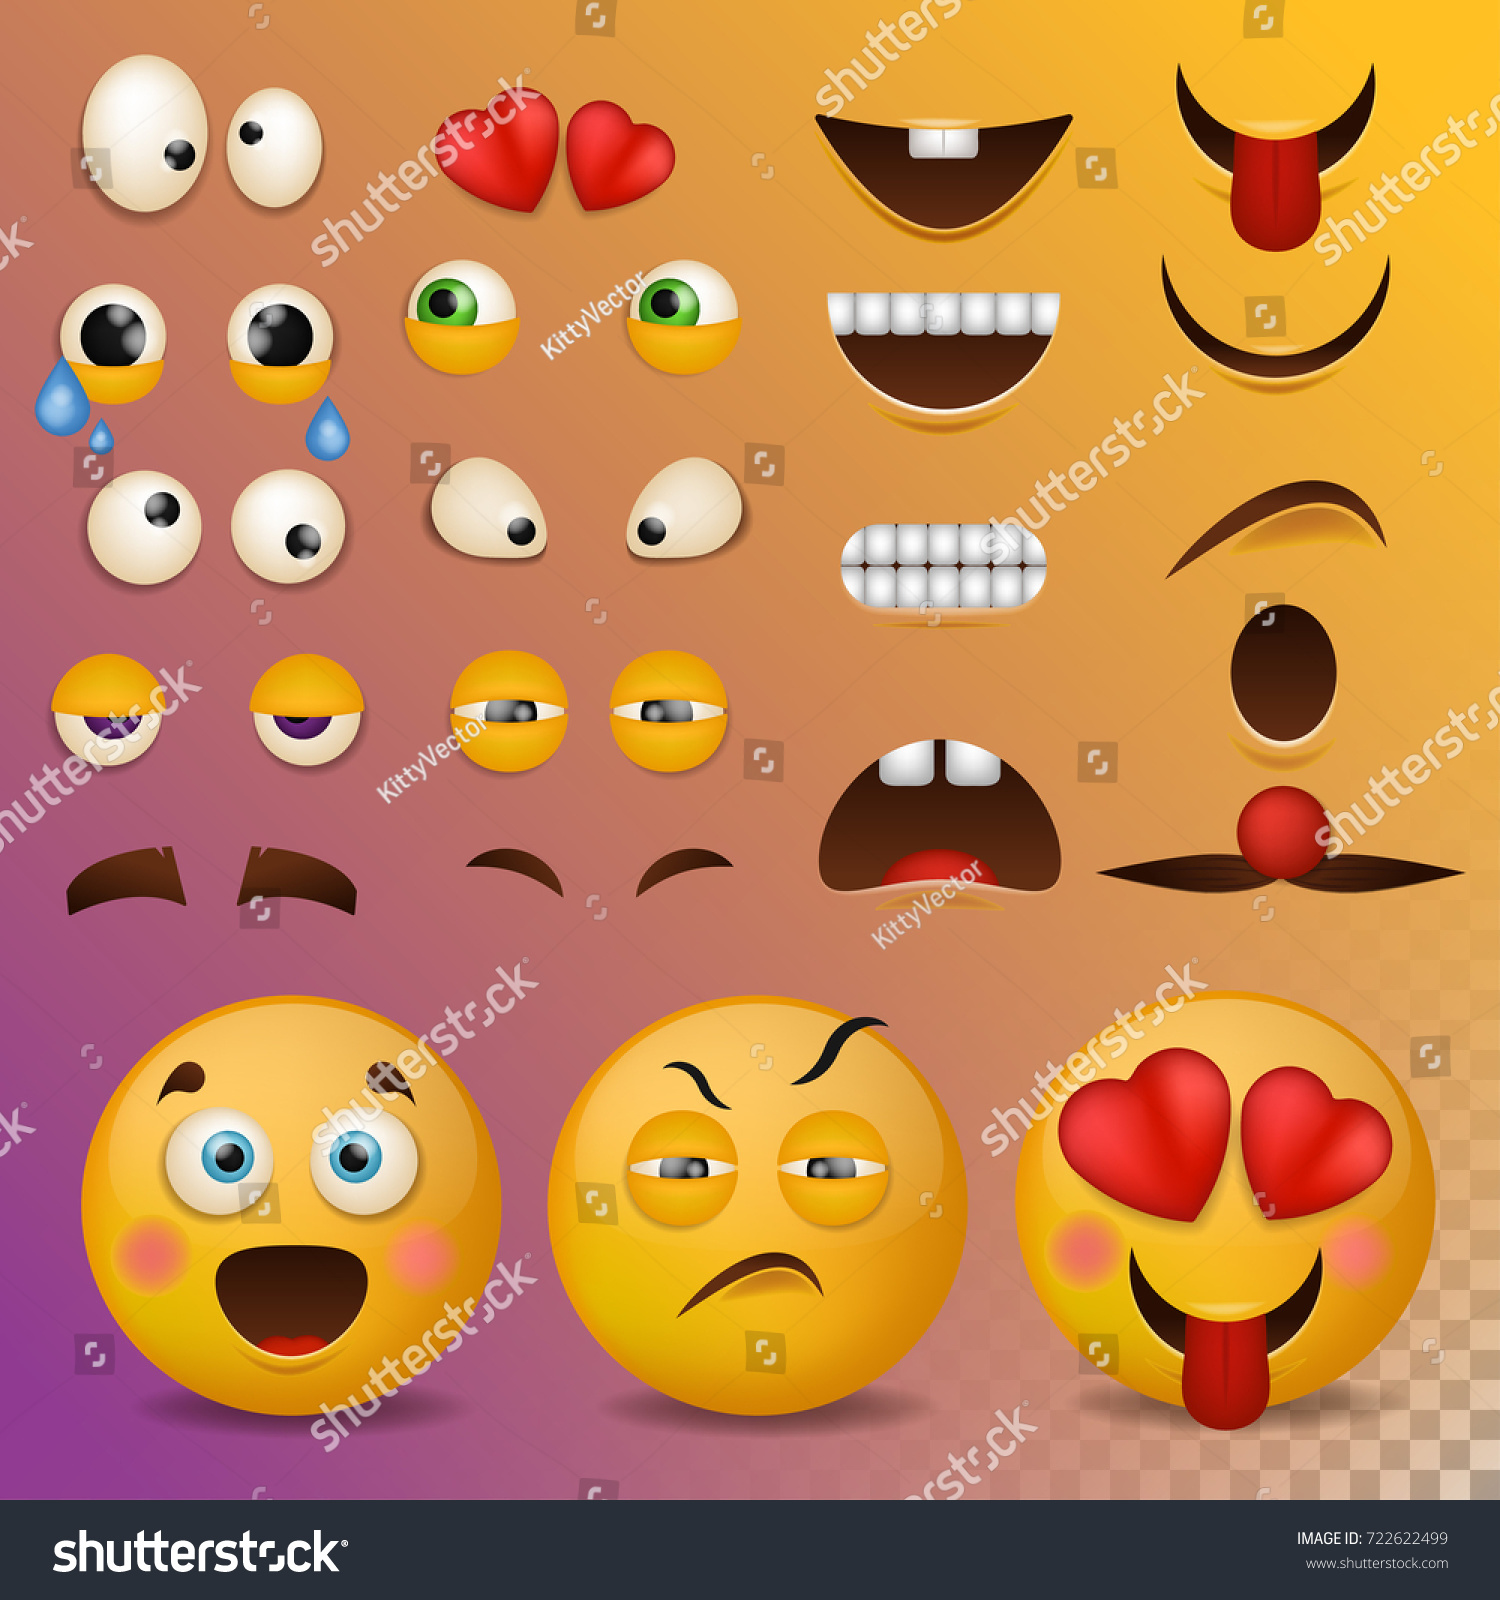 Yellow Smiley Face Character Your Scenes Stock Vector